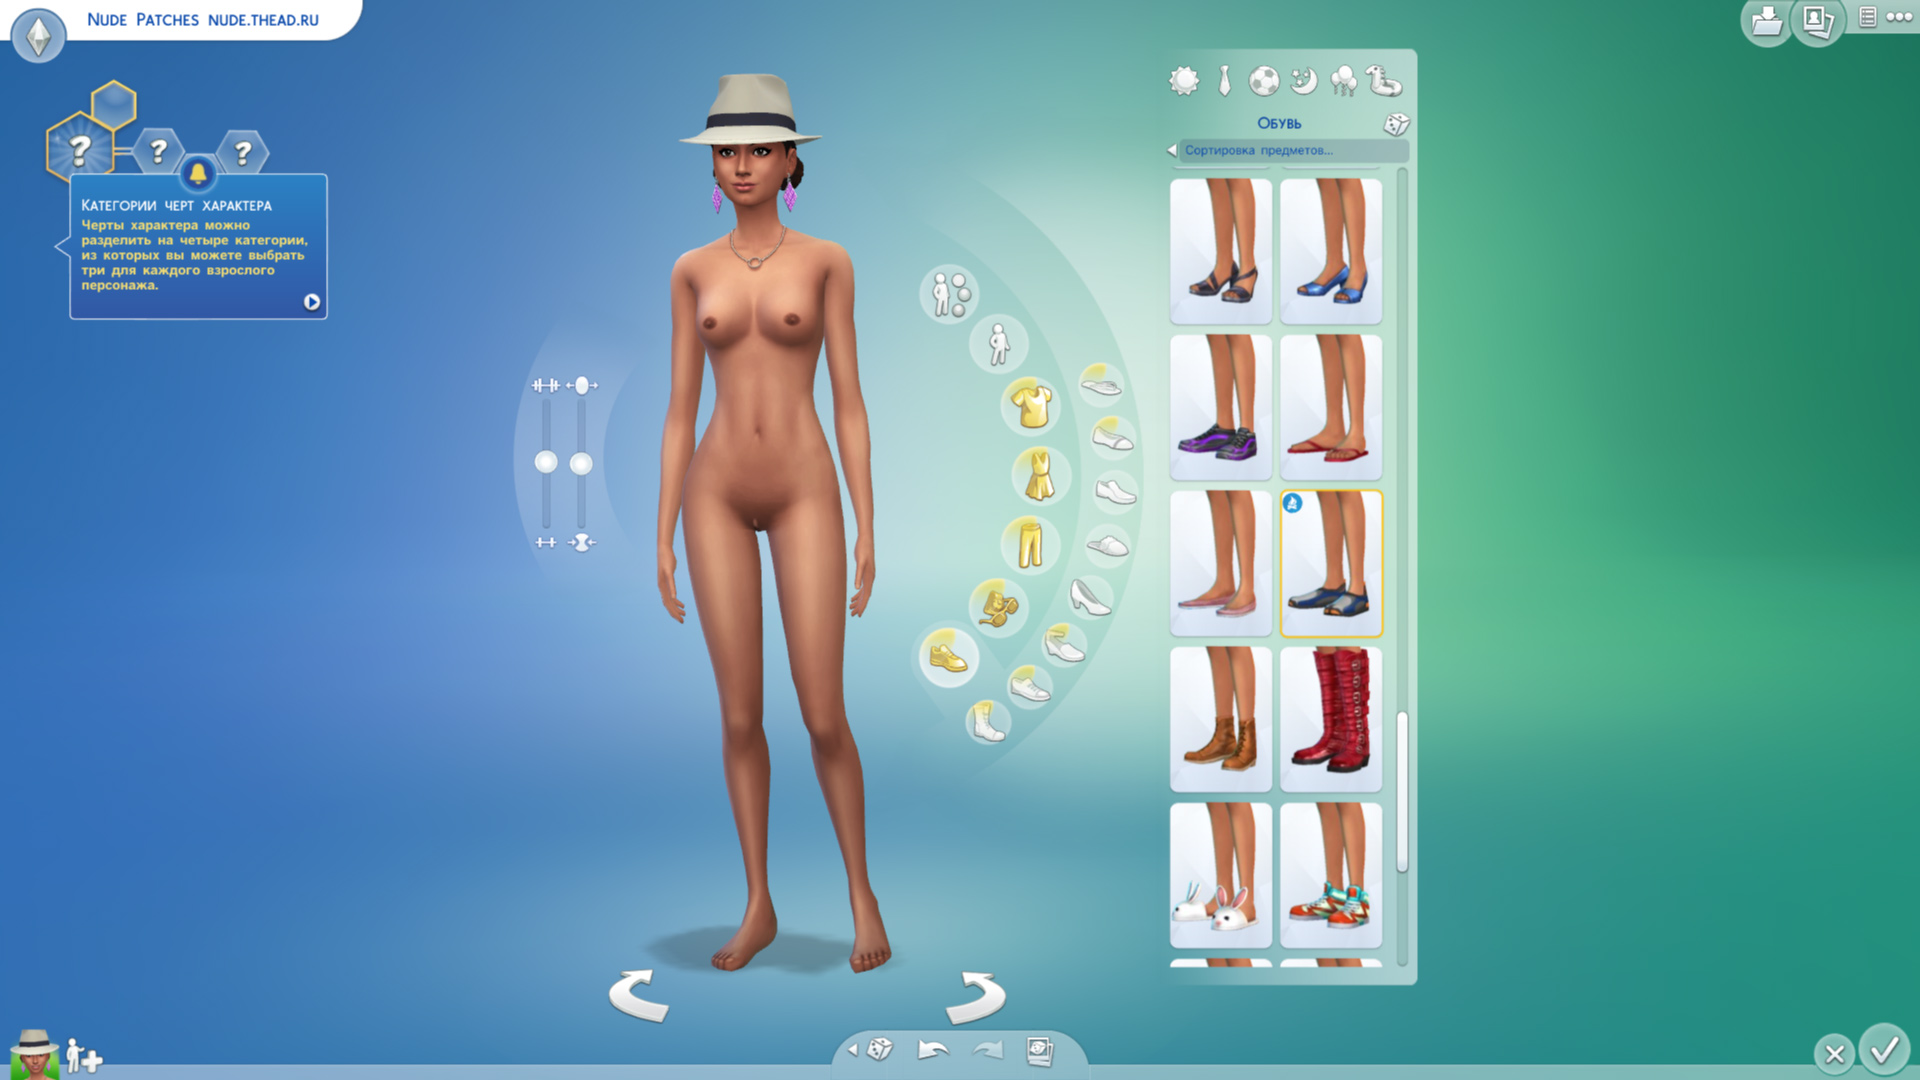 Female nudes sims 4 exposed photos